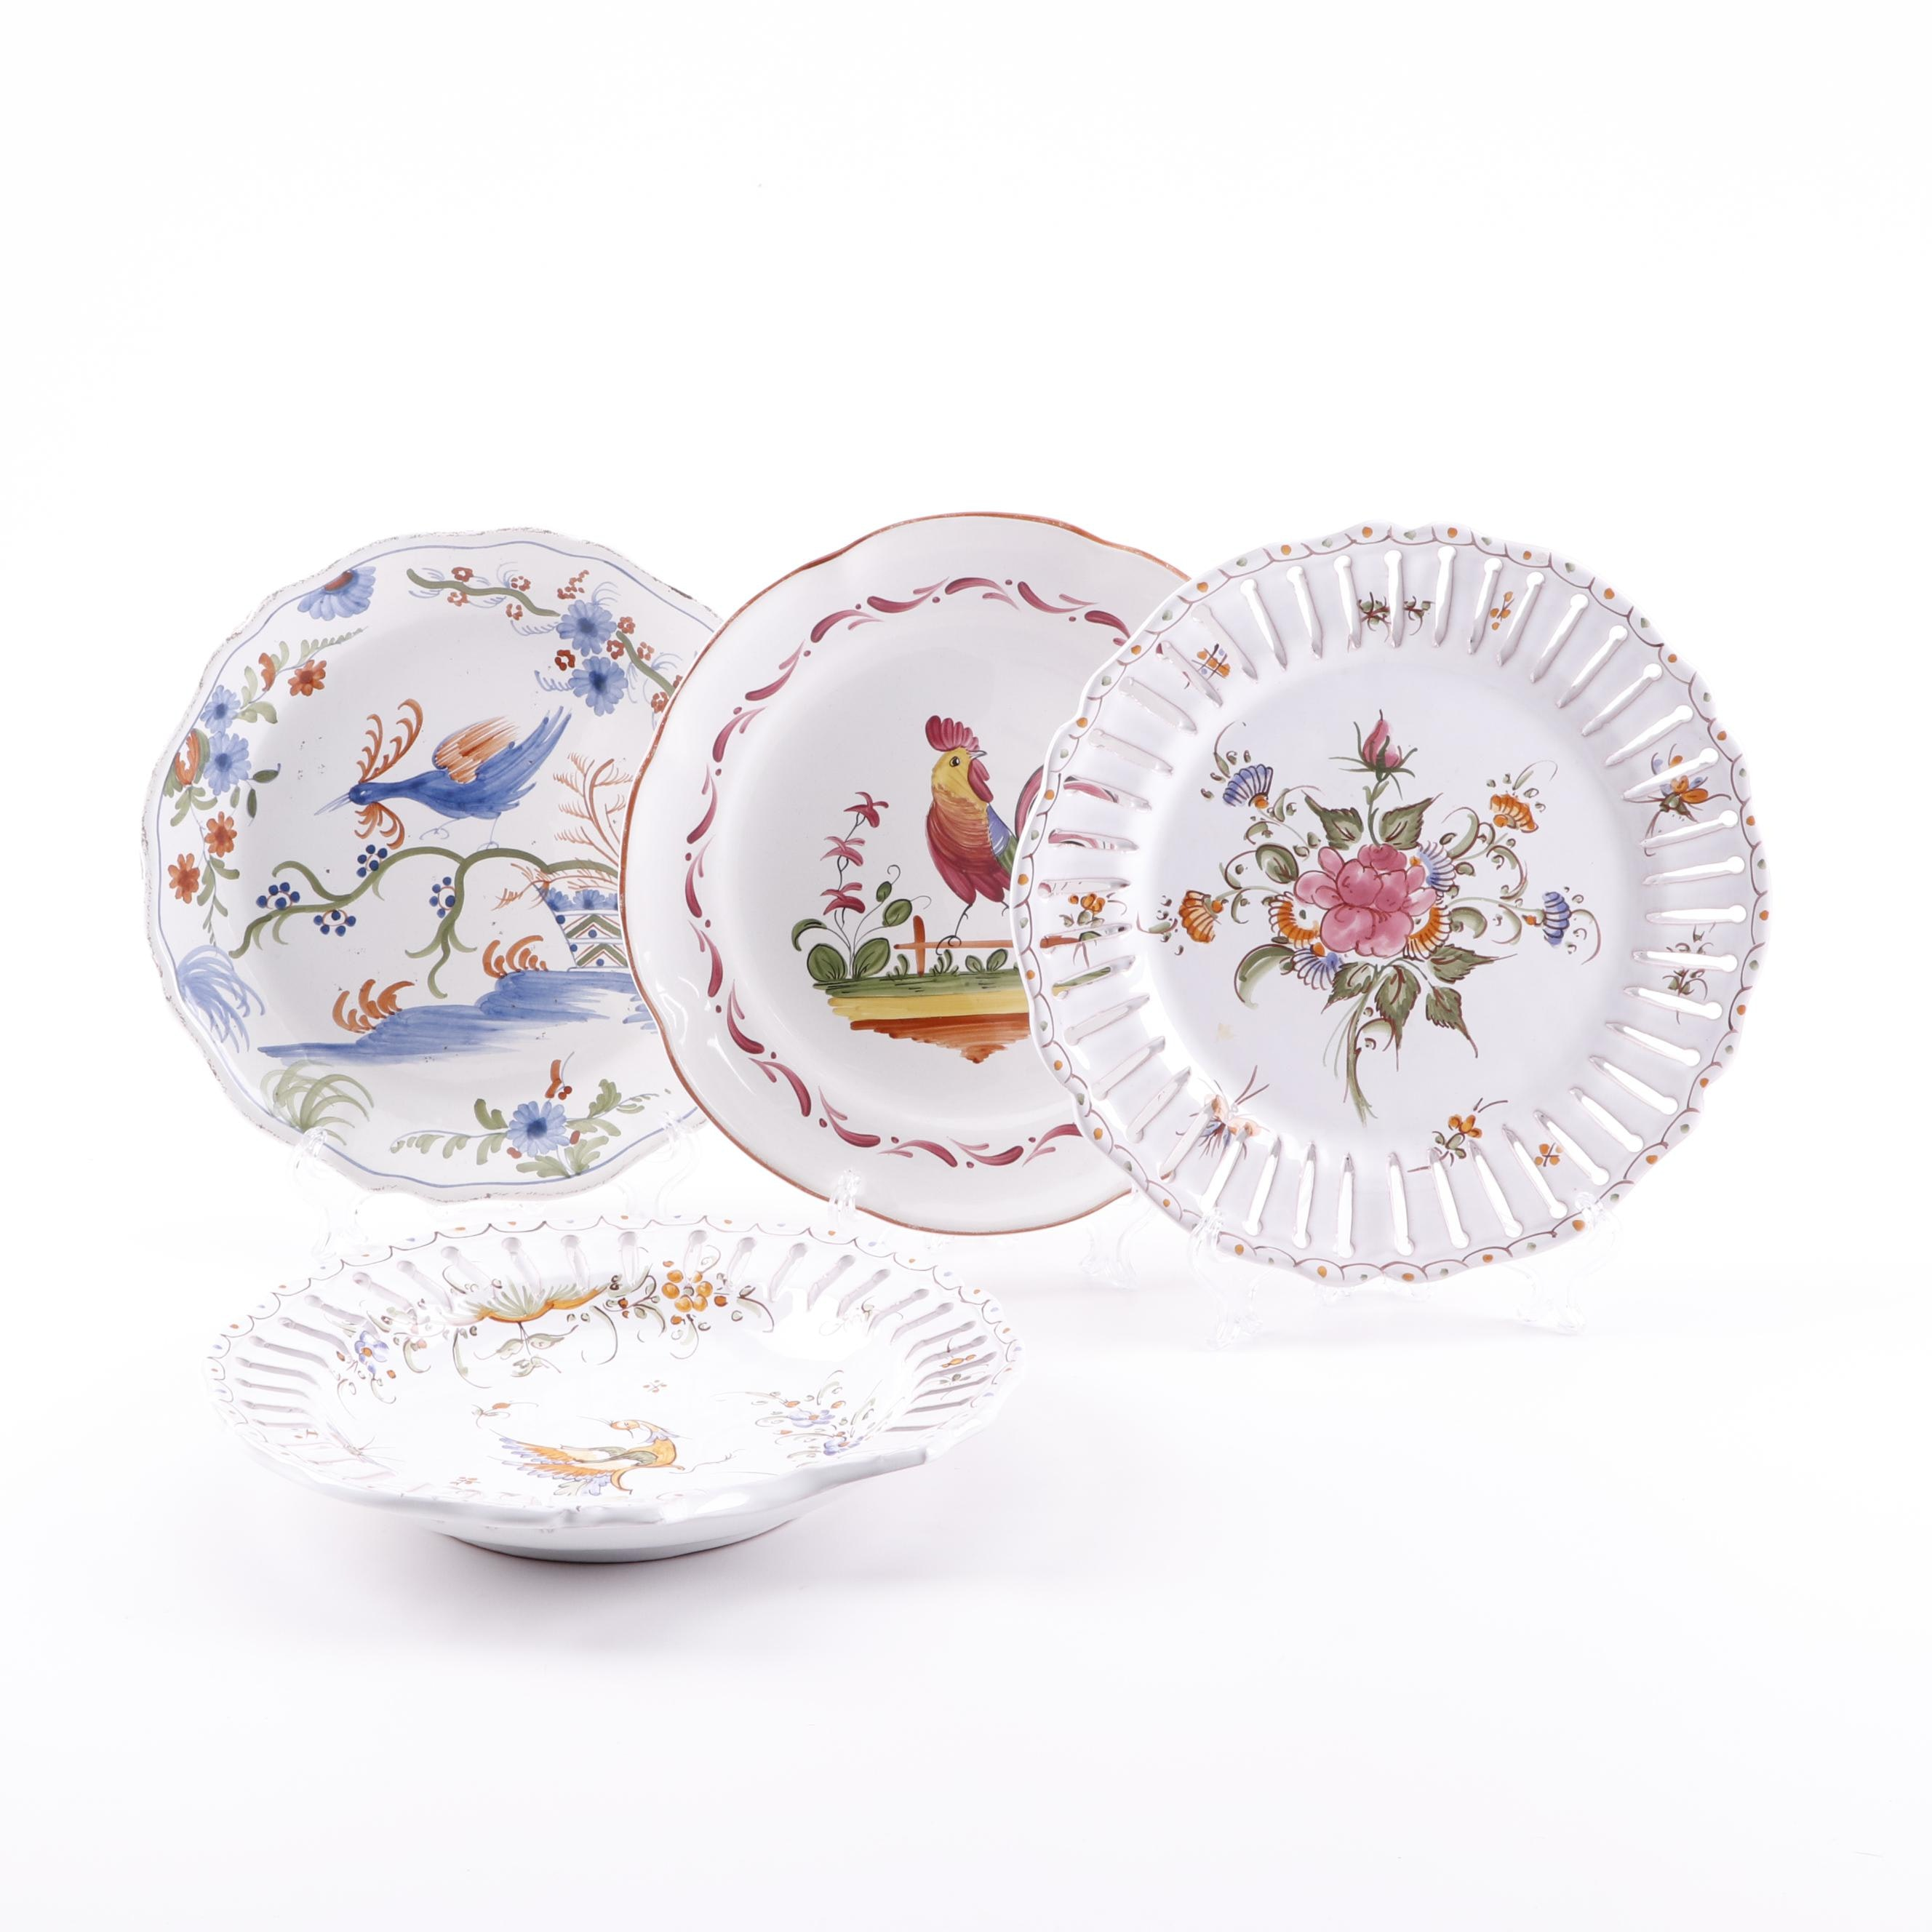 European Hand-Painted Faïence Style Plates and Bowl